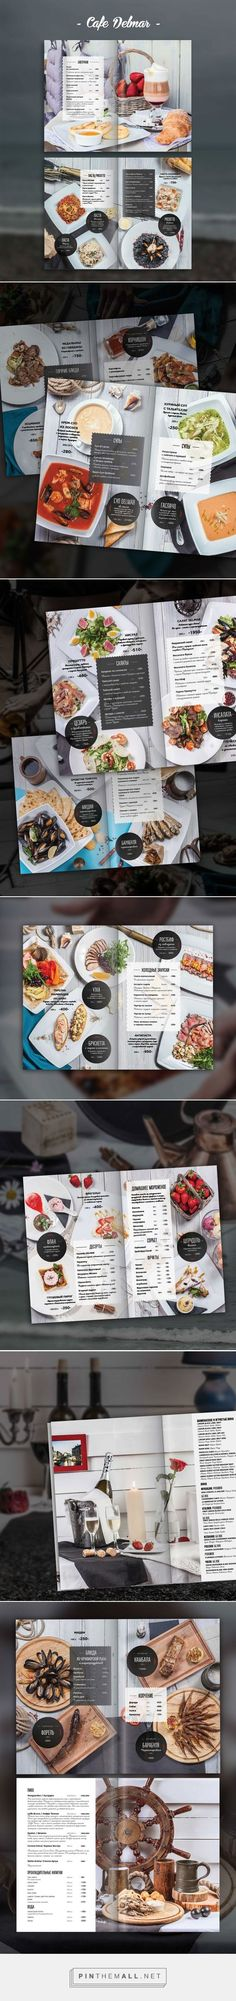 Photo & menu design for restaurant on Behance https://www.behance.net/gallery/40268491/Photo-menu-design-for-restaurant - created via https://pinthemall.net